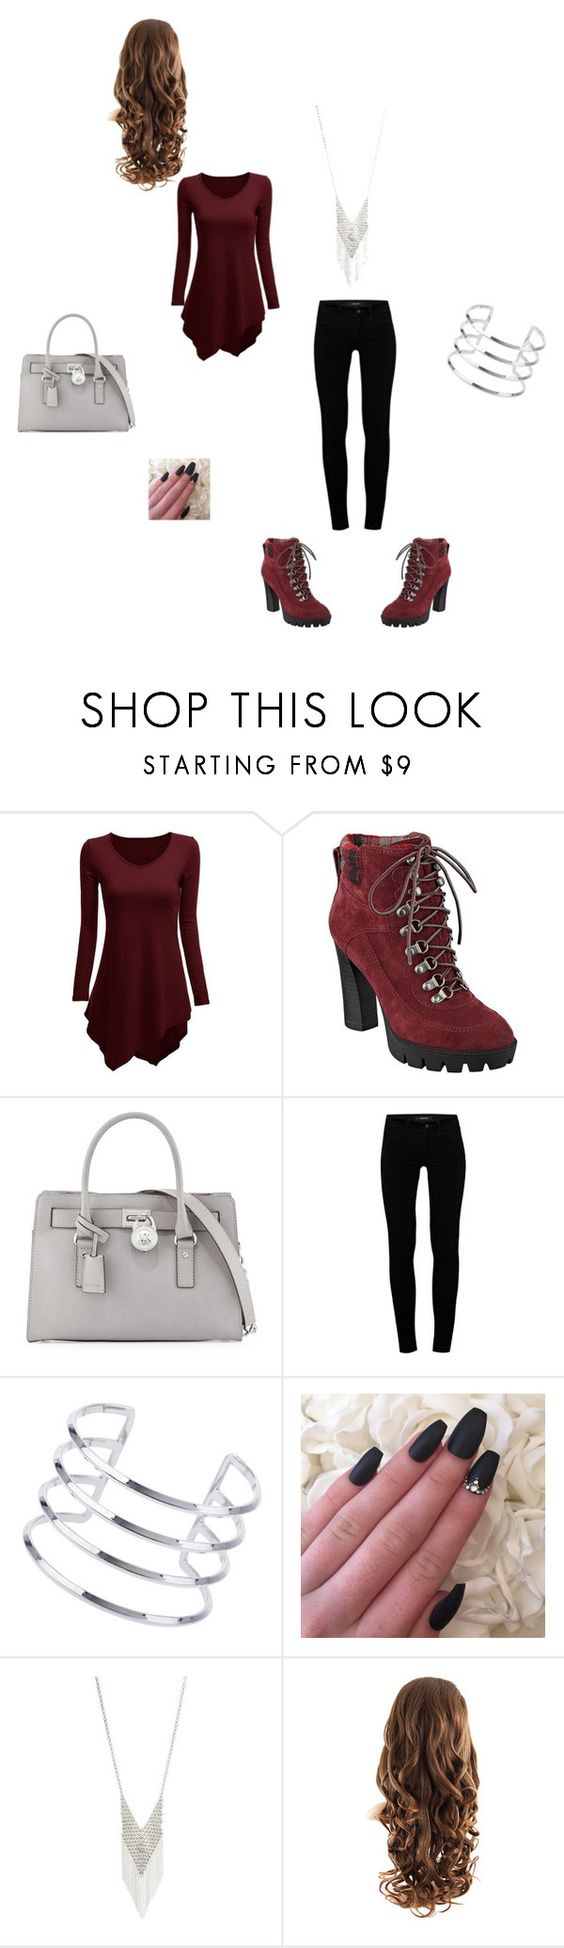 """Something to Create"" by taviaaaaa on Polyvore featuring Nine West, MICHAEL Michael Kors, J Brand, Miss Selfridge and Lane Bryant"